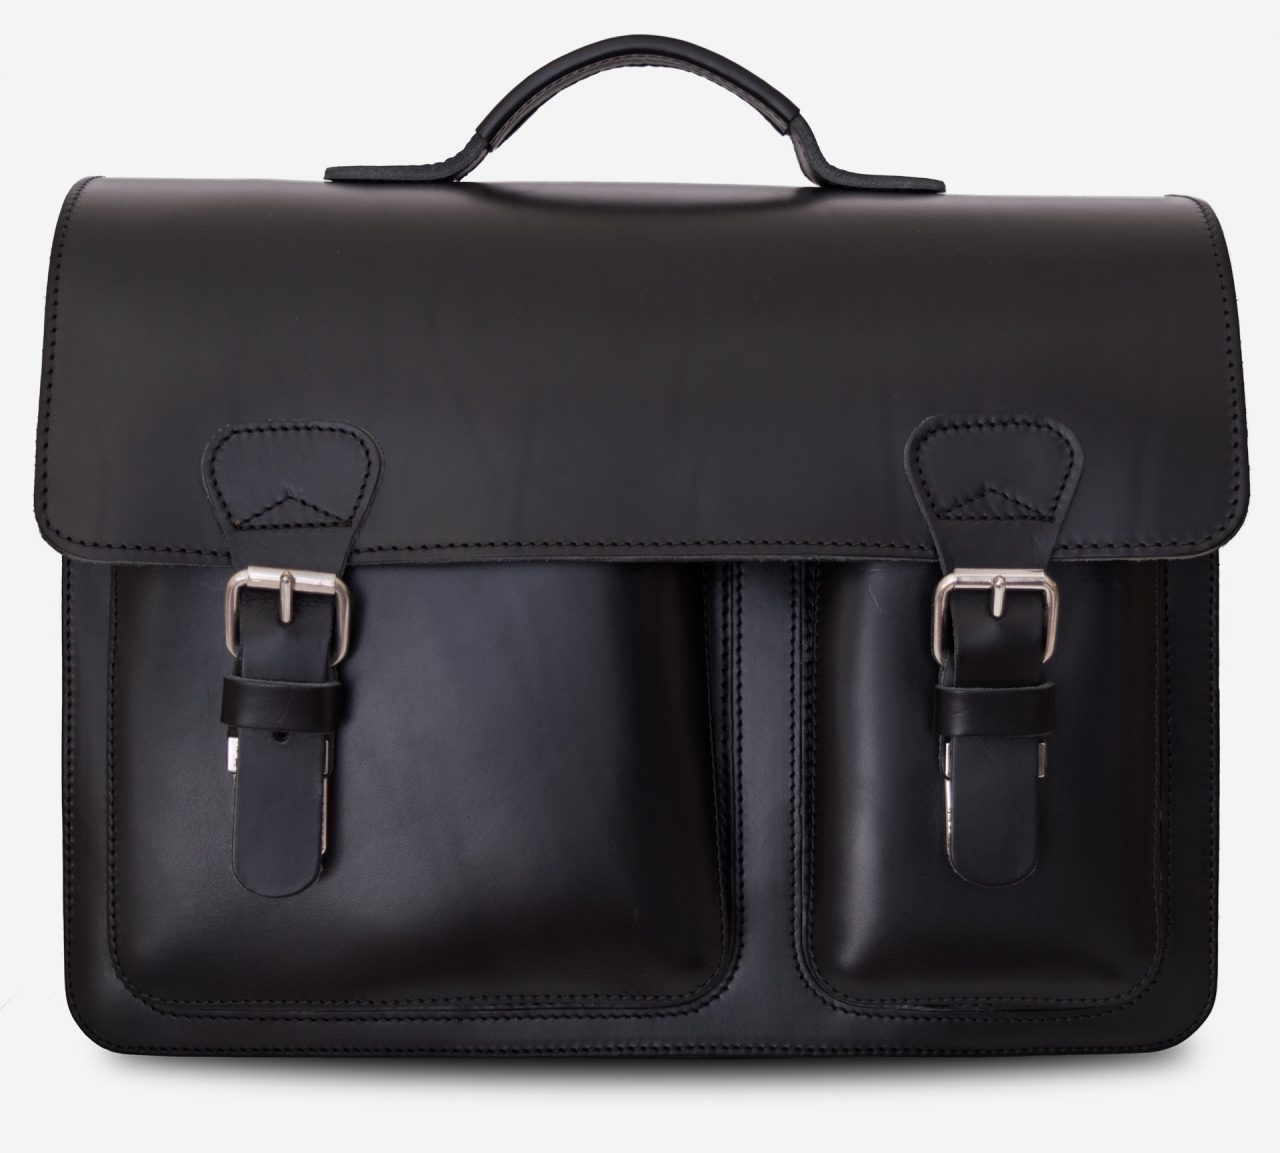 Front view of black leather laptop satchel bag with 3 gussets and asymmetric front pockets 112337.